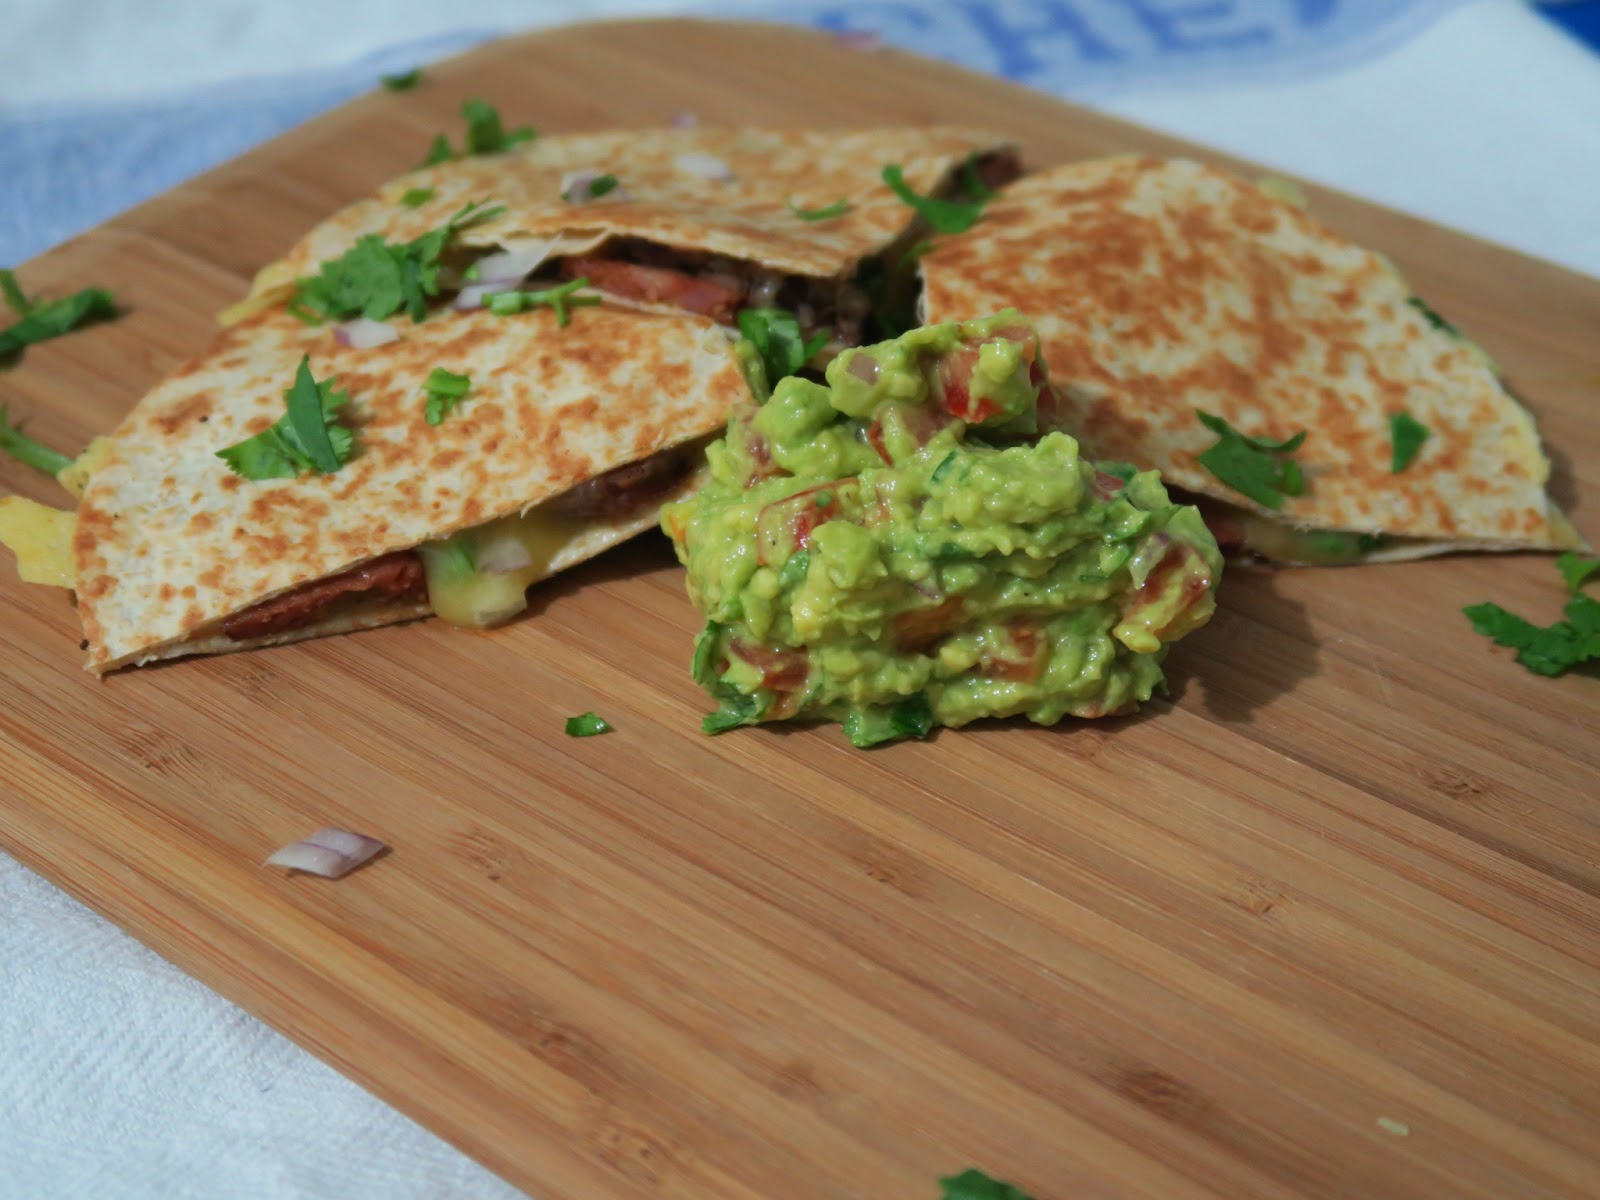 Chipotle & black-bean quesadillas with guacamole.